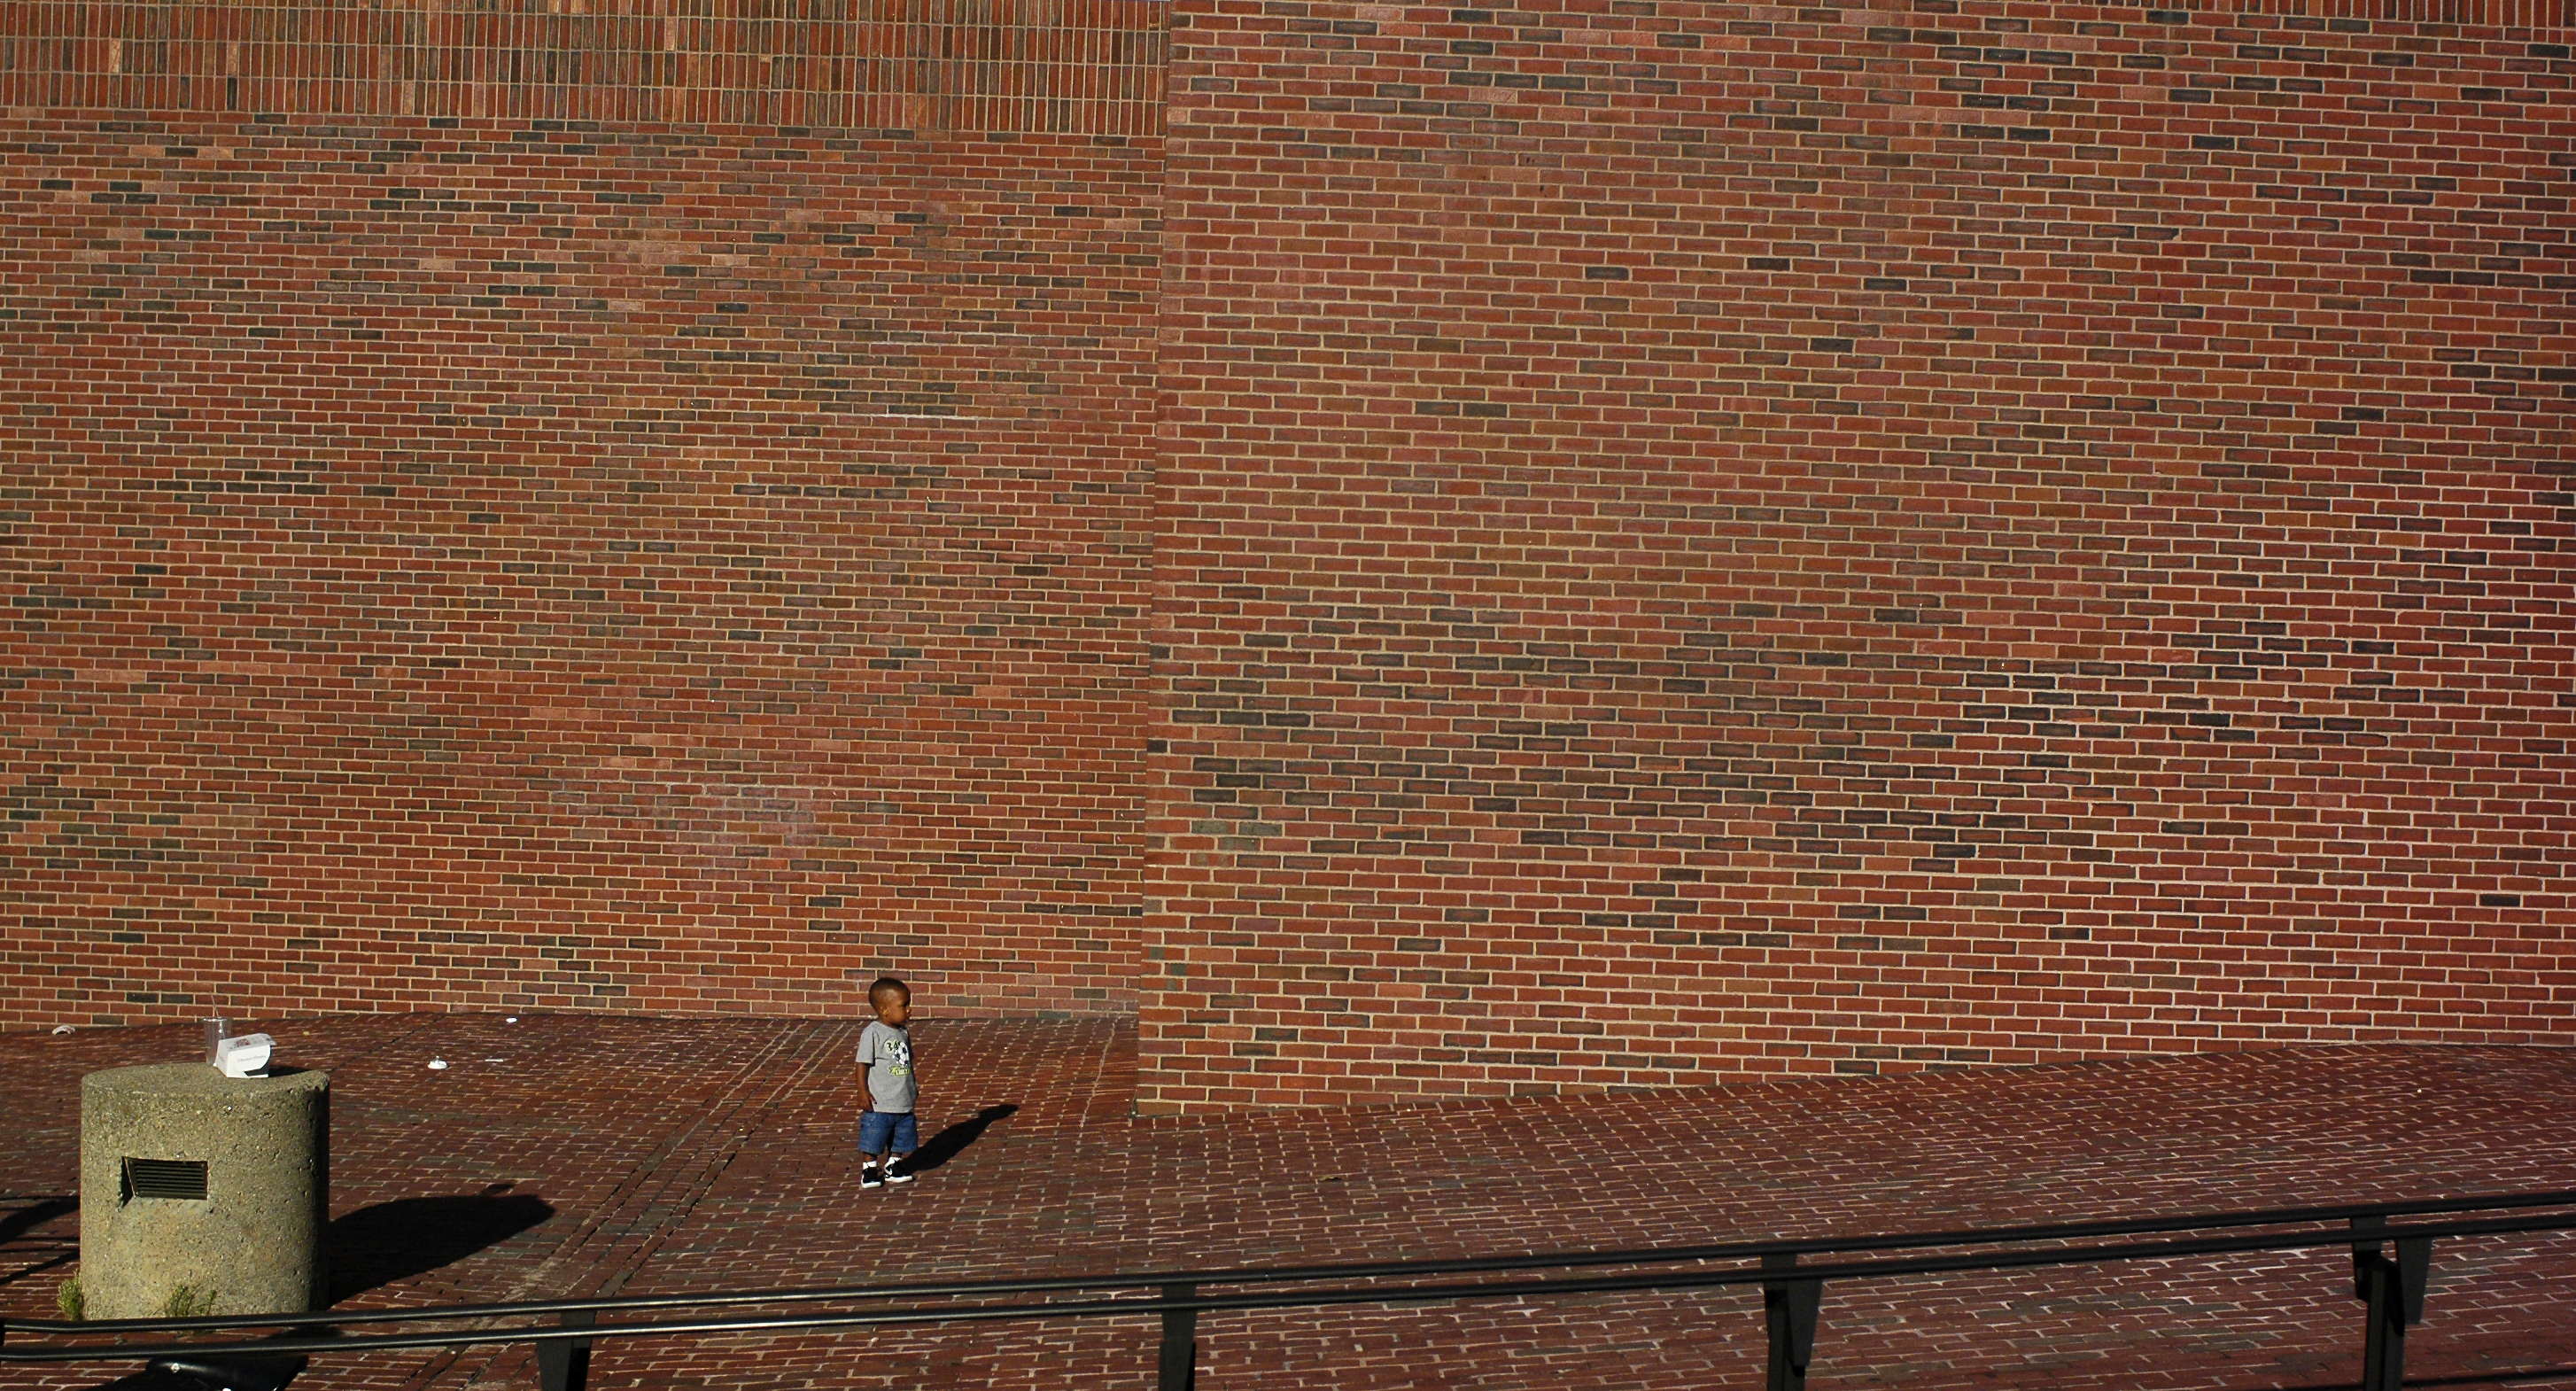 File:Little Boy And Brick Wall In Government Center Boston